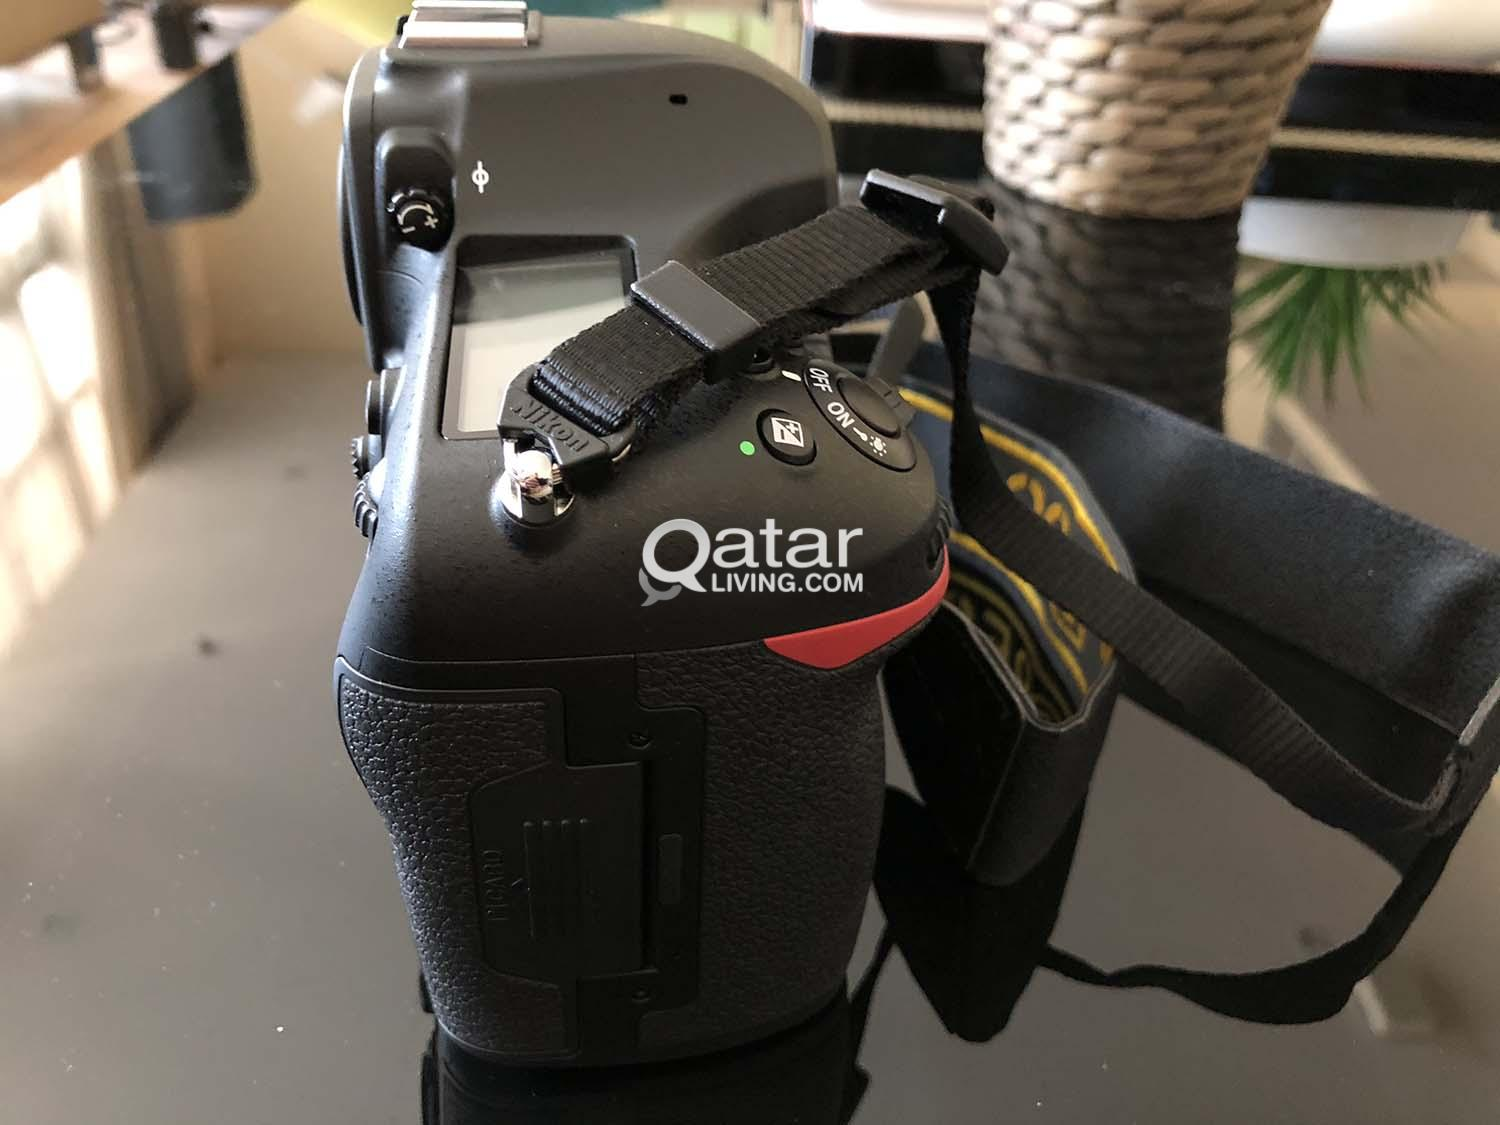 Nikon D850 DSLR camera for sale (1481 shutter count) | Qatar Living